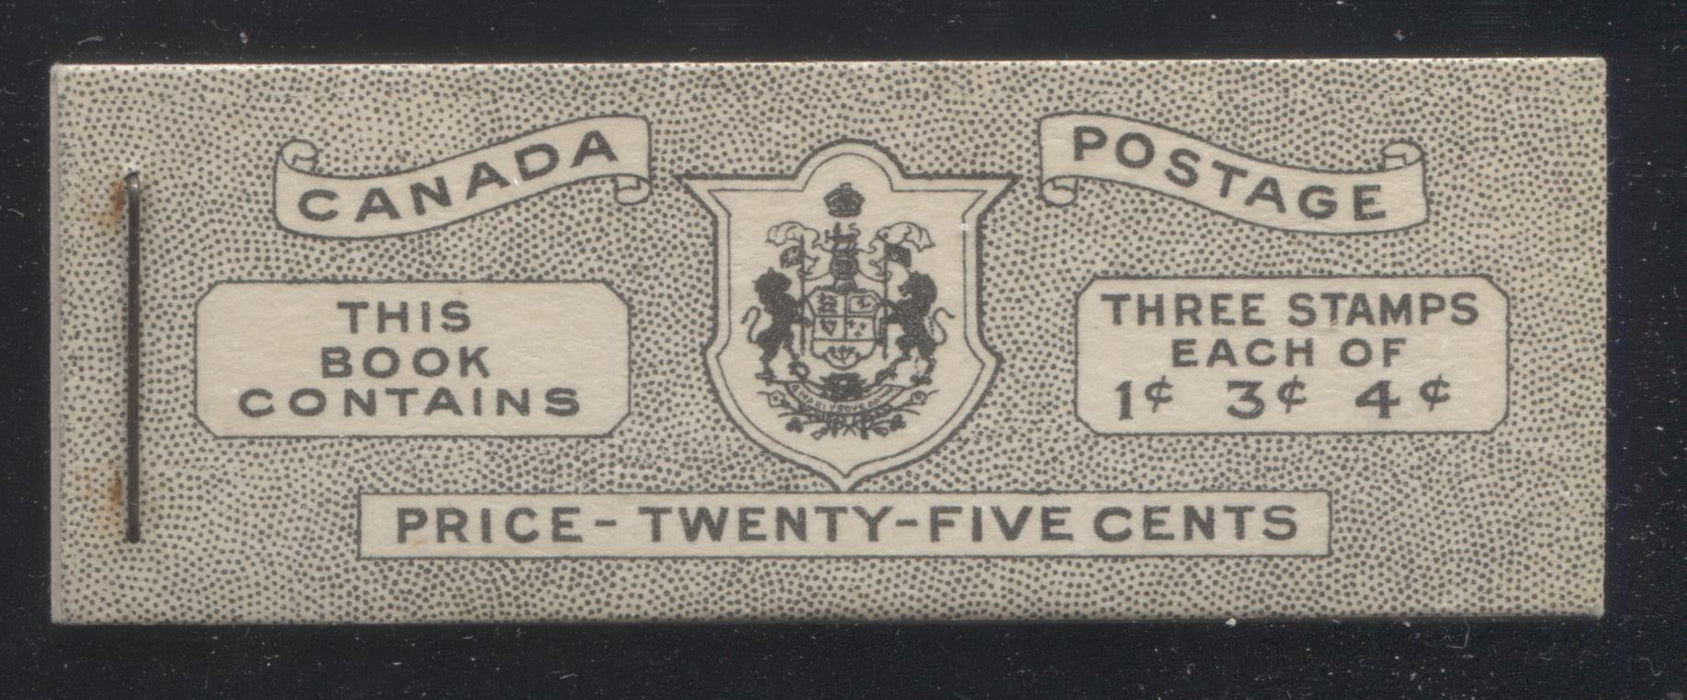 Canada #BK38a 1942-1949 War Issue Complete 25c, English Booklet Containing 1 Pane Each of 3 of 1c Green, 3c Rose-Purple and 4c Carmine Red, Harris Front Cover Type IVa , Back Cover Haiii, 7c & 6c Rate Page Brixton Chrome